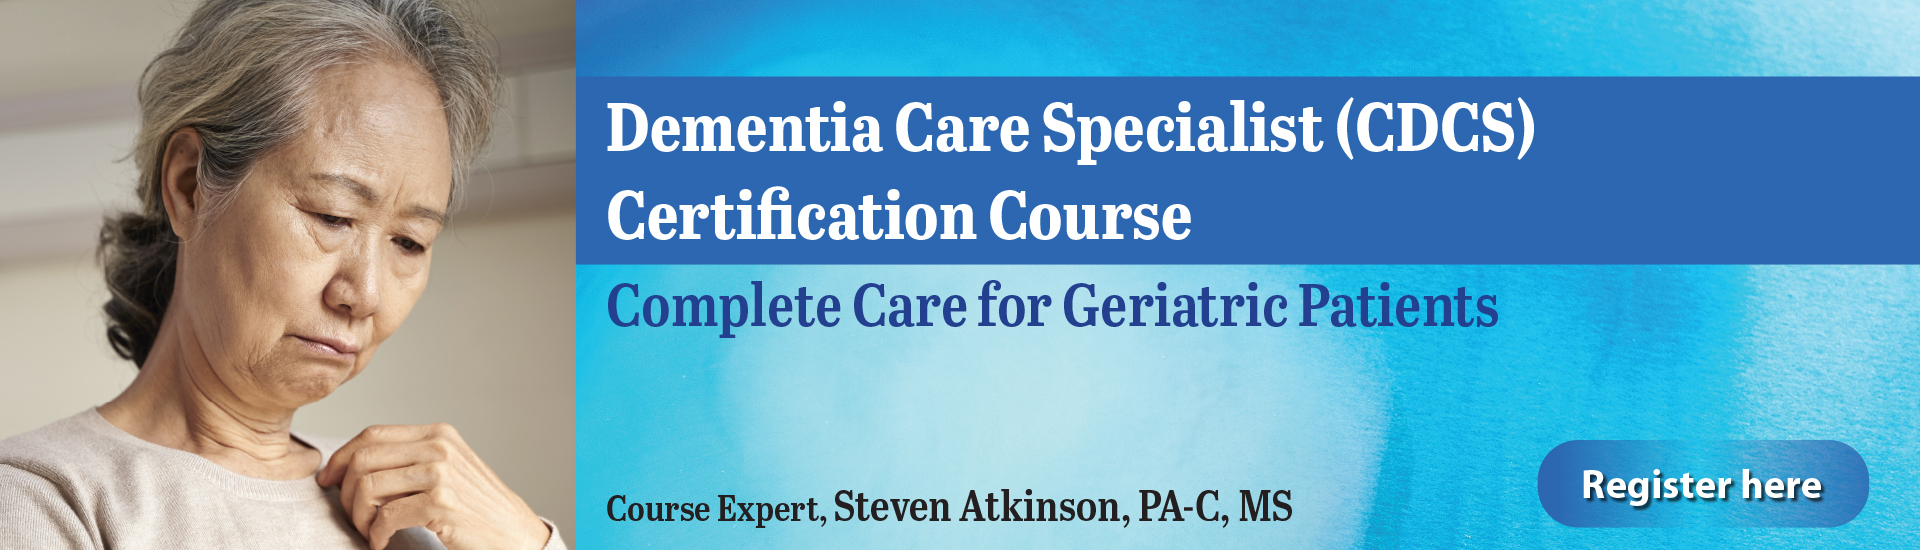 Dementia Care Specialist (CDCS) Certification Course